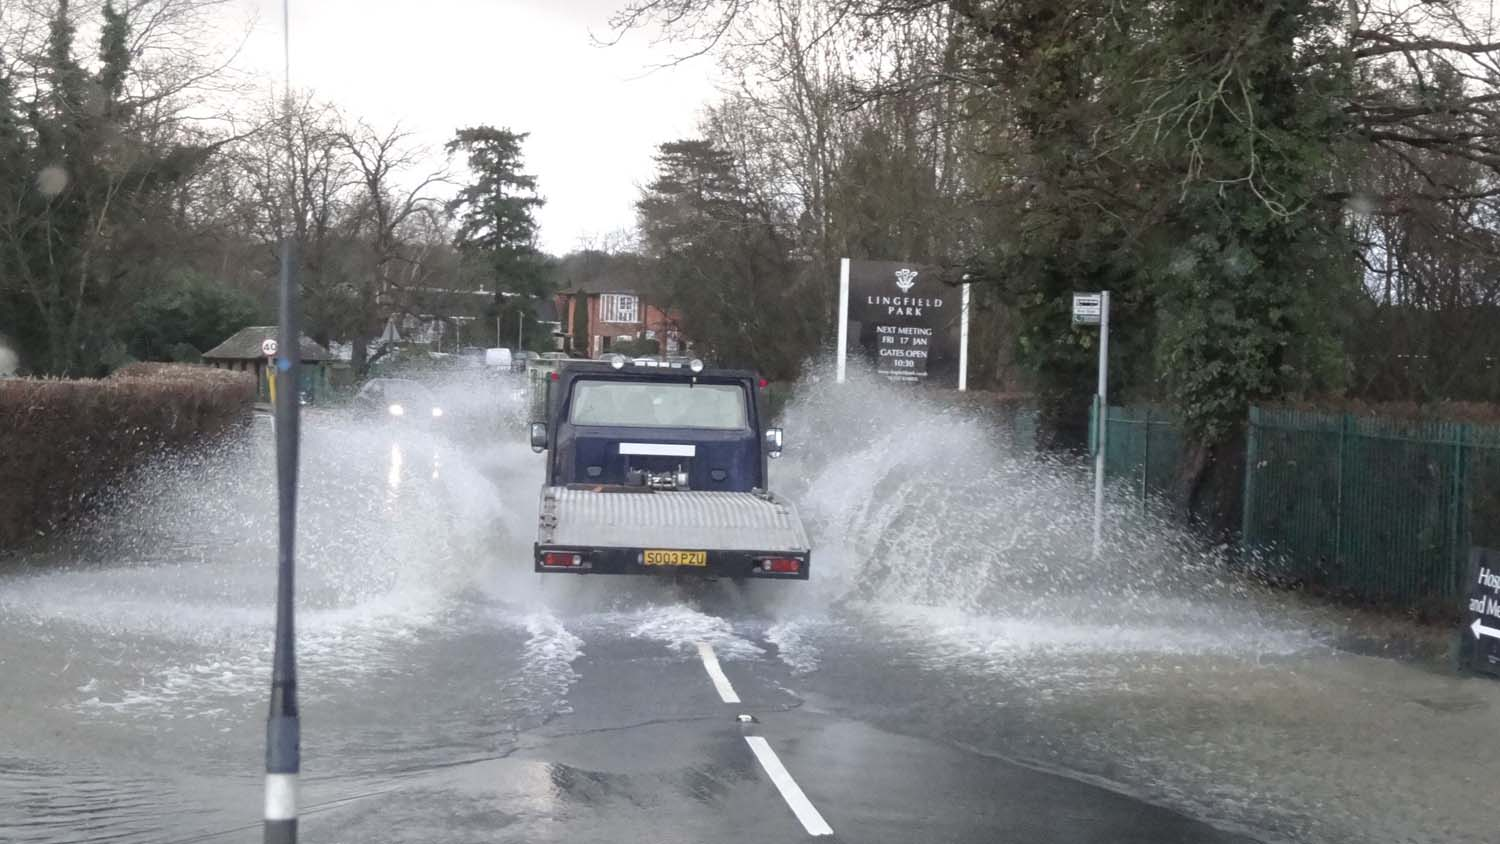 the UK was very wet that year